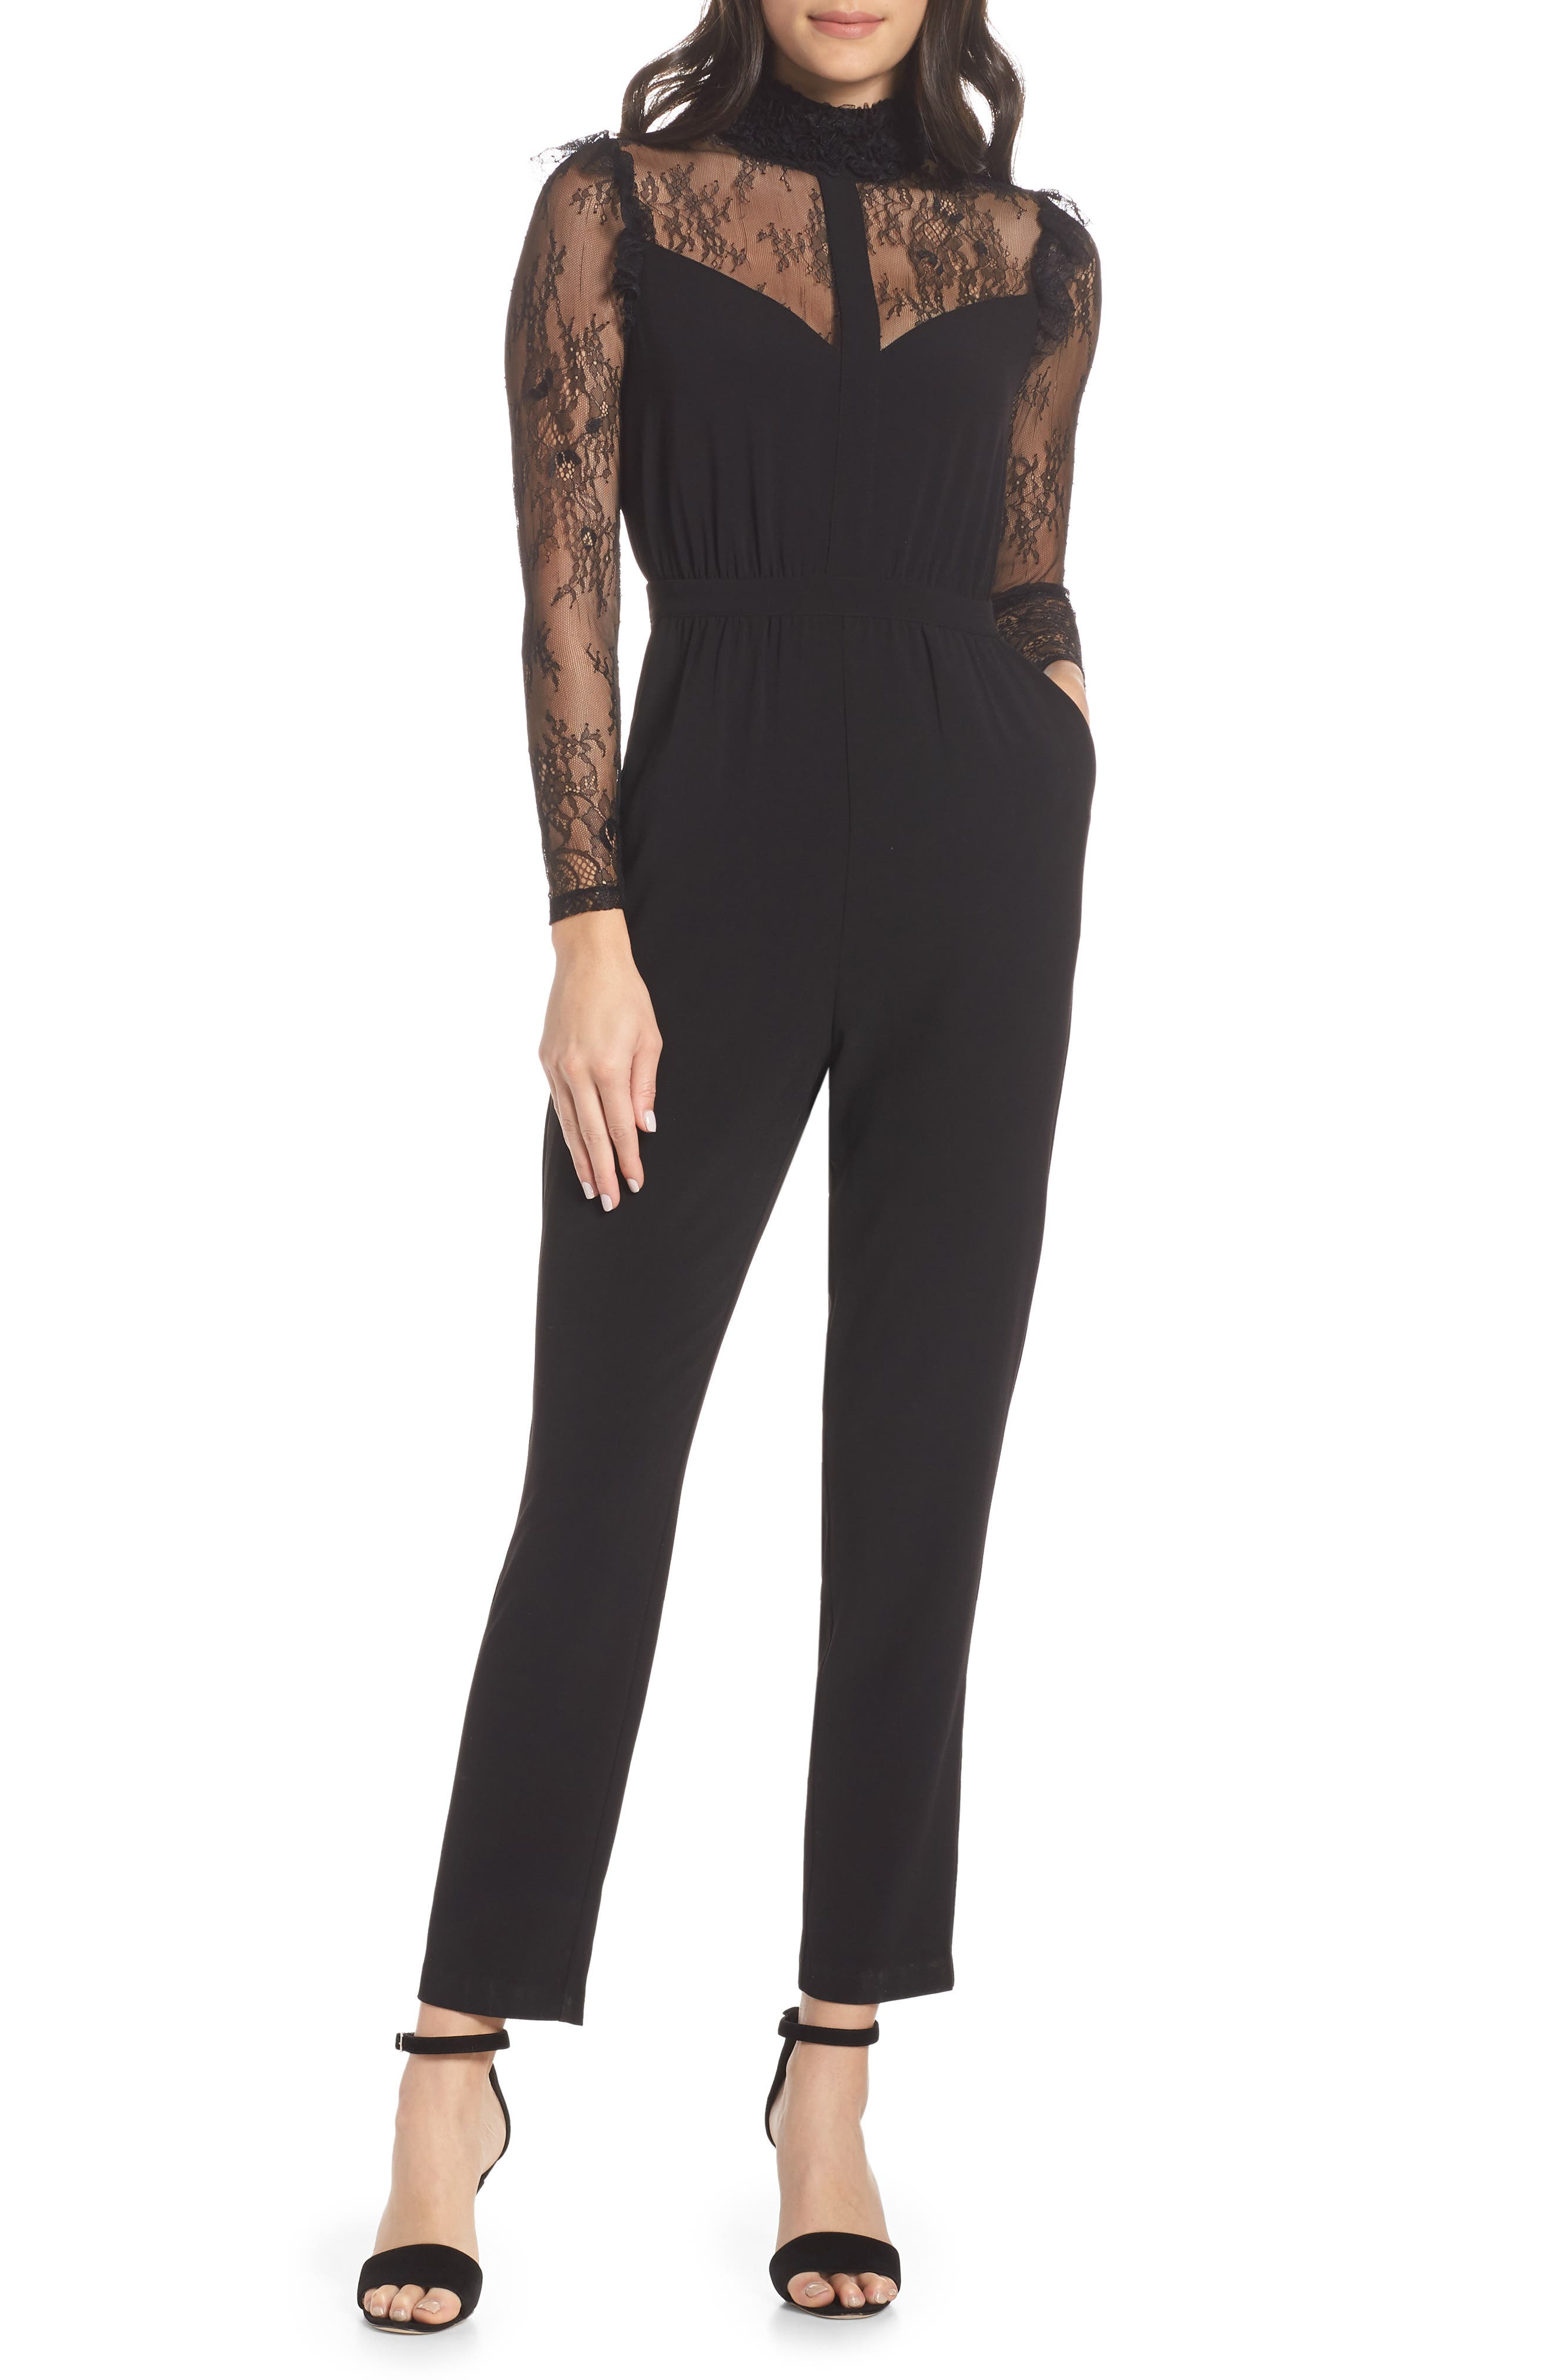 ALI & JAY Be My Baby Jumpsuit in Black